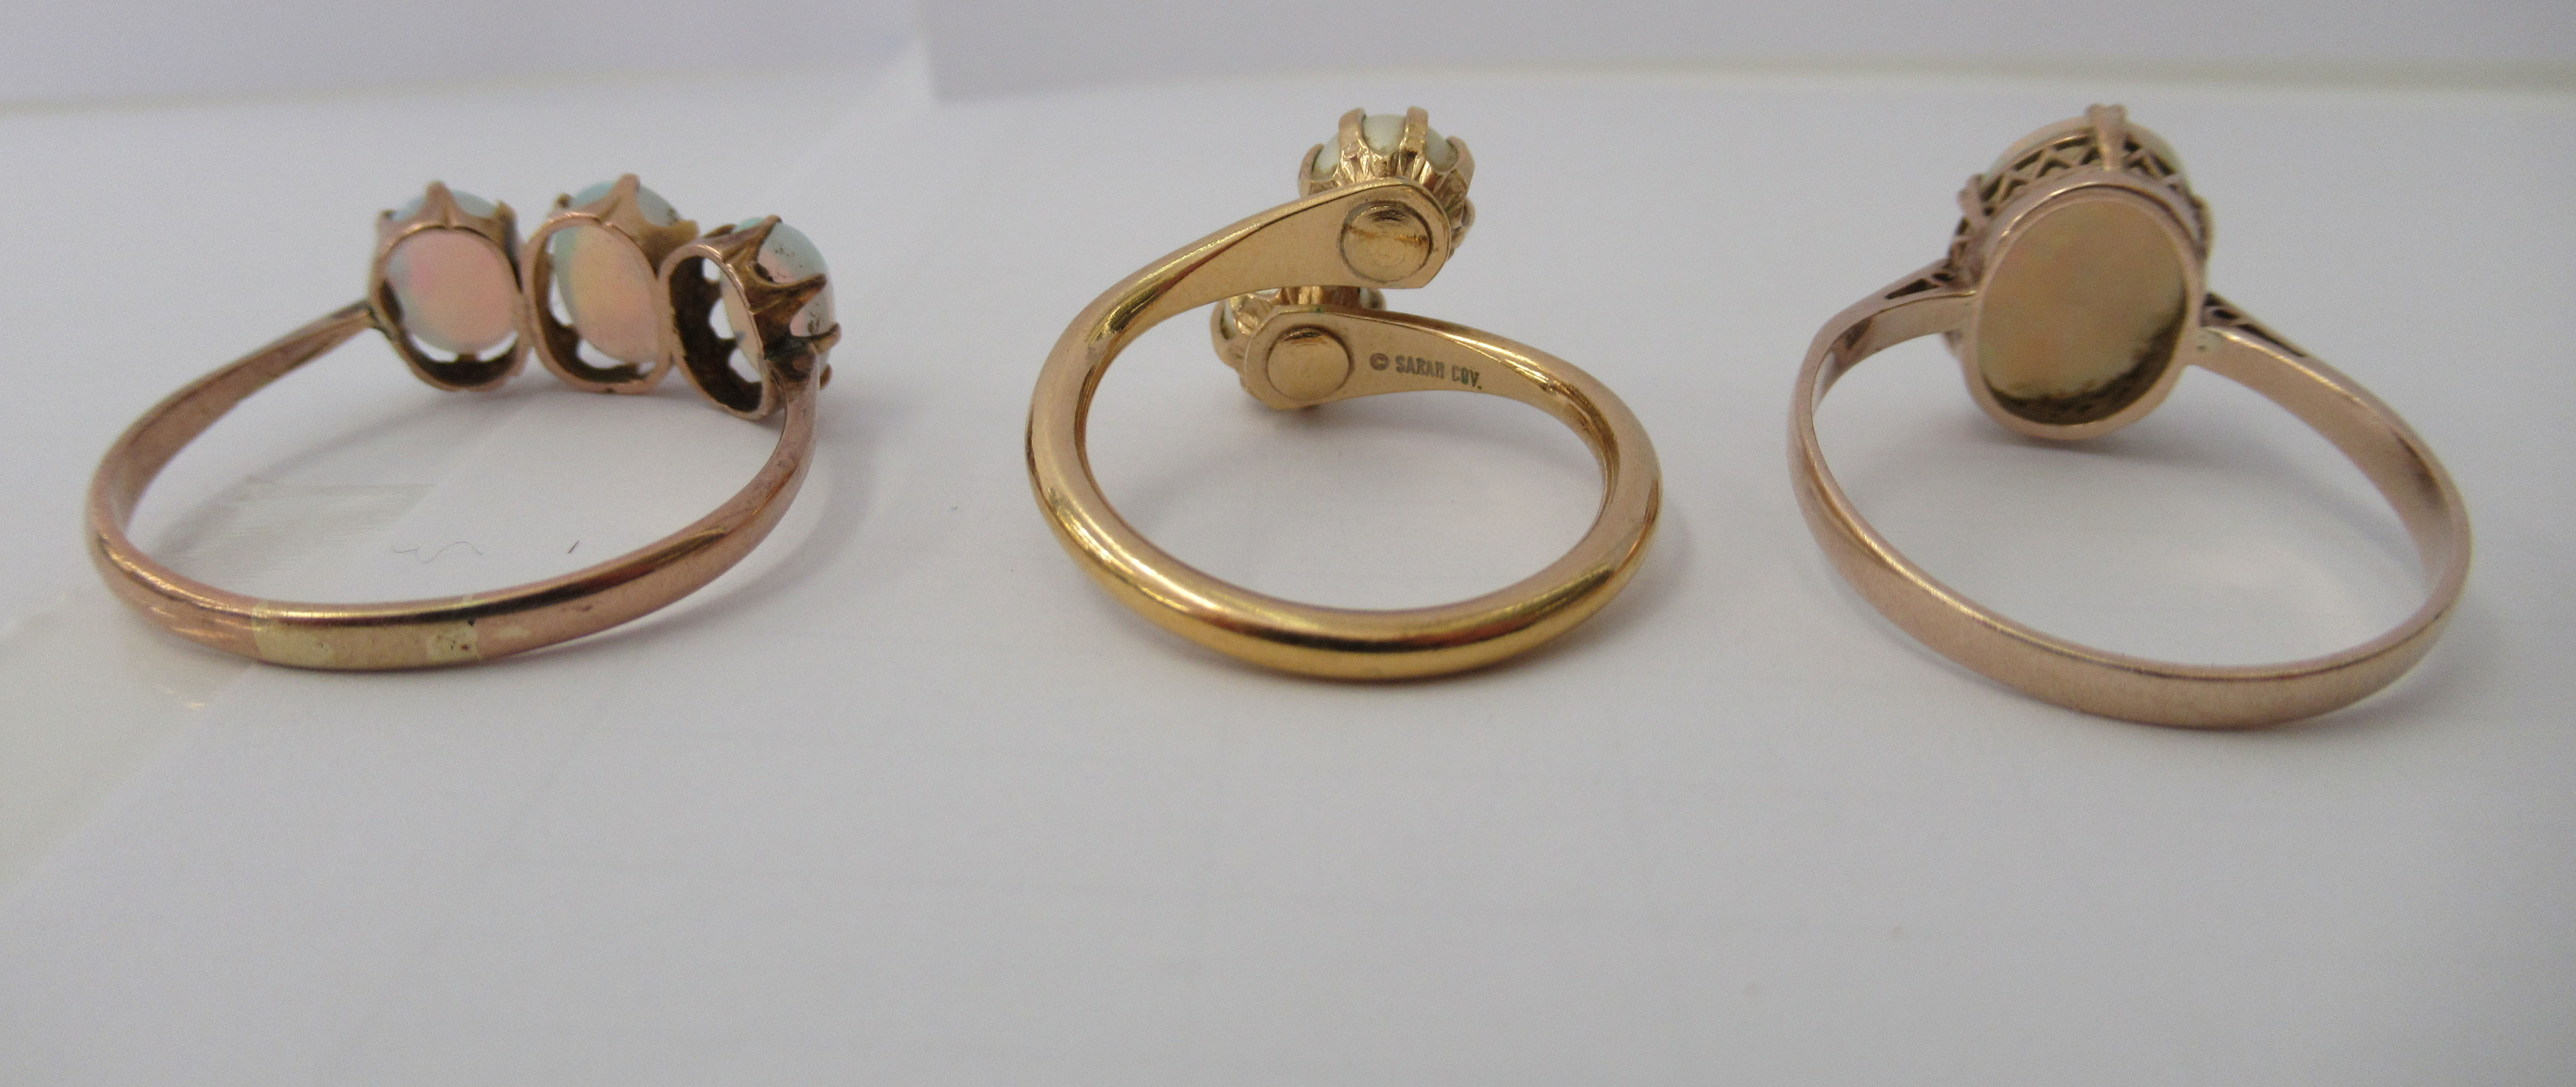 Three yellow metal rings and a white metal coloured ring, set with simulated pearls, opals and other - Image 4 of 5